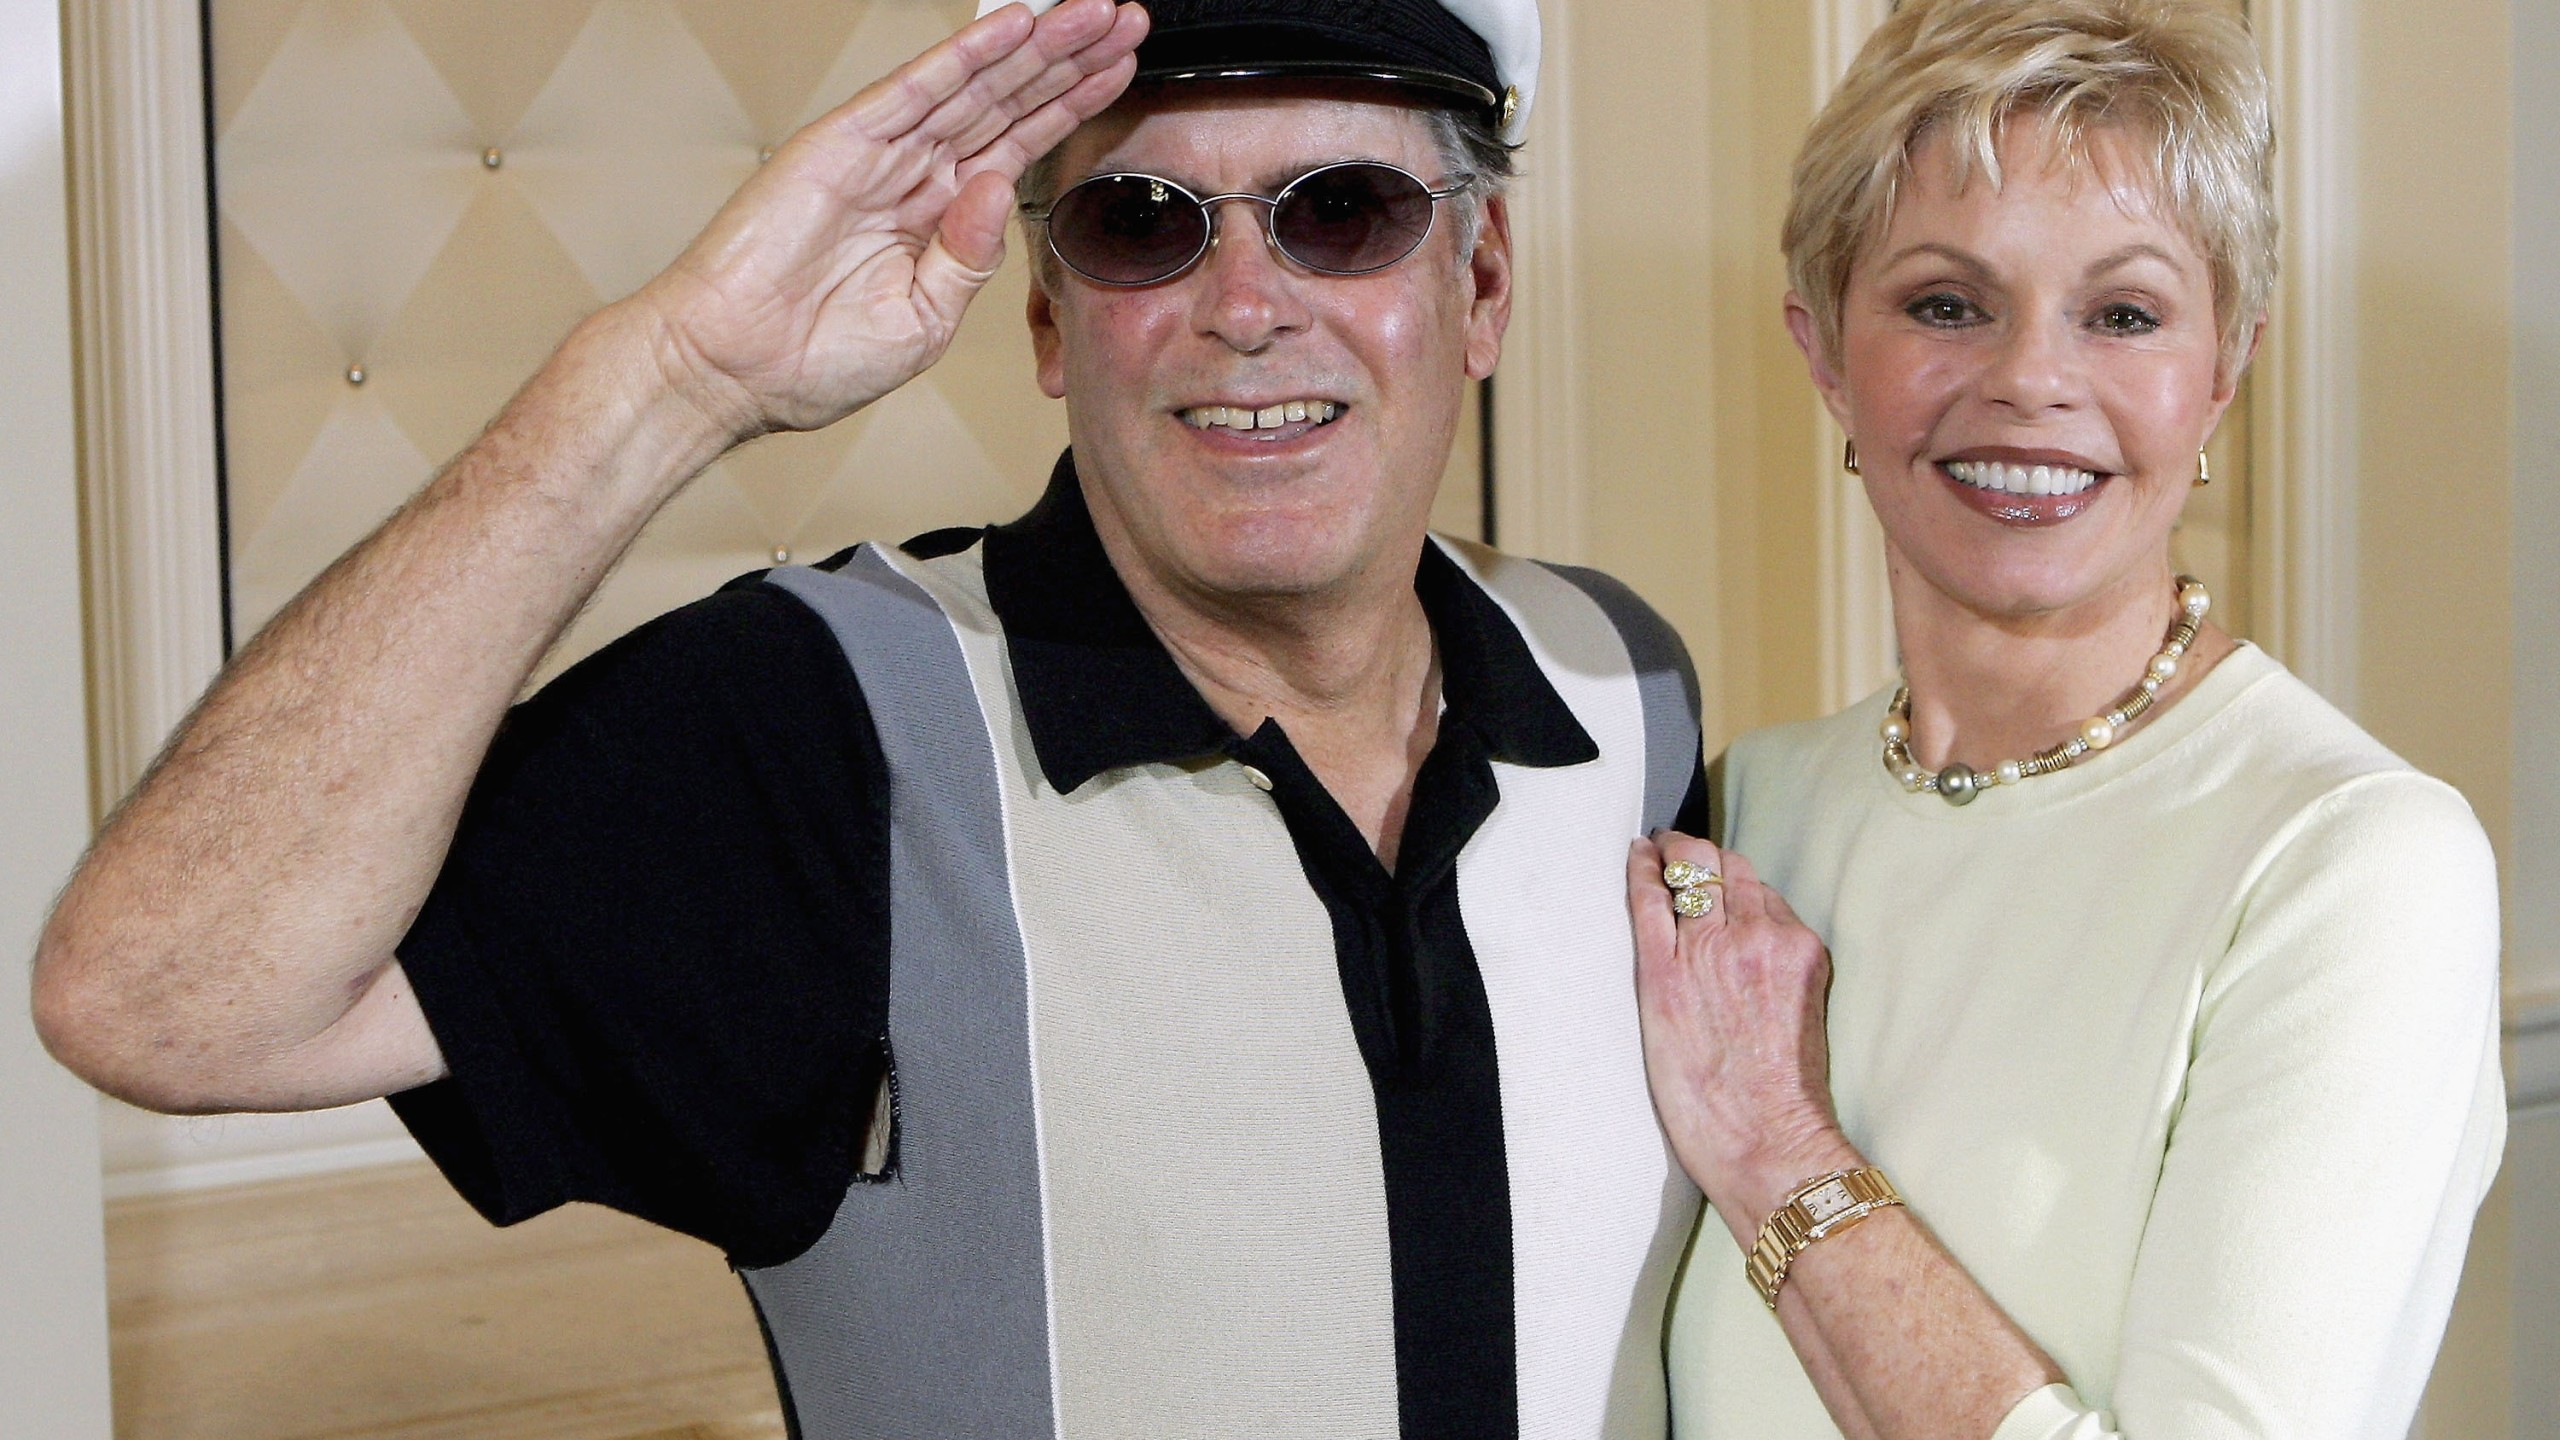 """Captain"" Daryl Dragon and his wife Toni Tennille of the music duo The Captain and Tennille, pose at the Video Software Dealers Association's annual home video convention at the Bellagio hotel in Las Vegas on July 27, 2005. (Credit: Ethan Miller/Getty Images)"